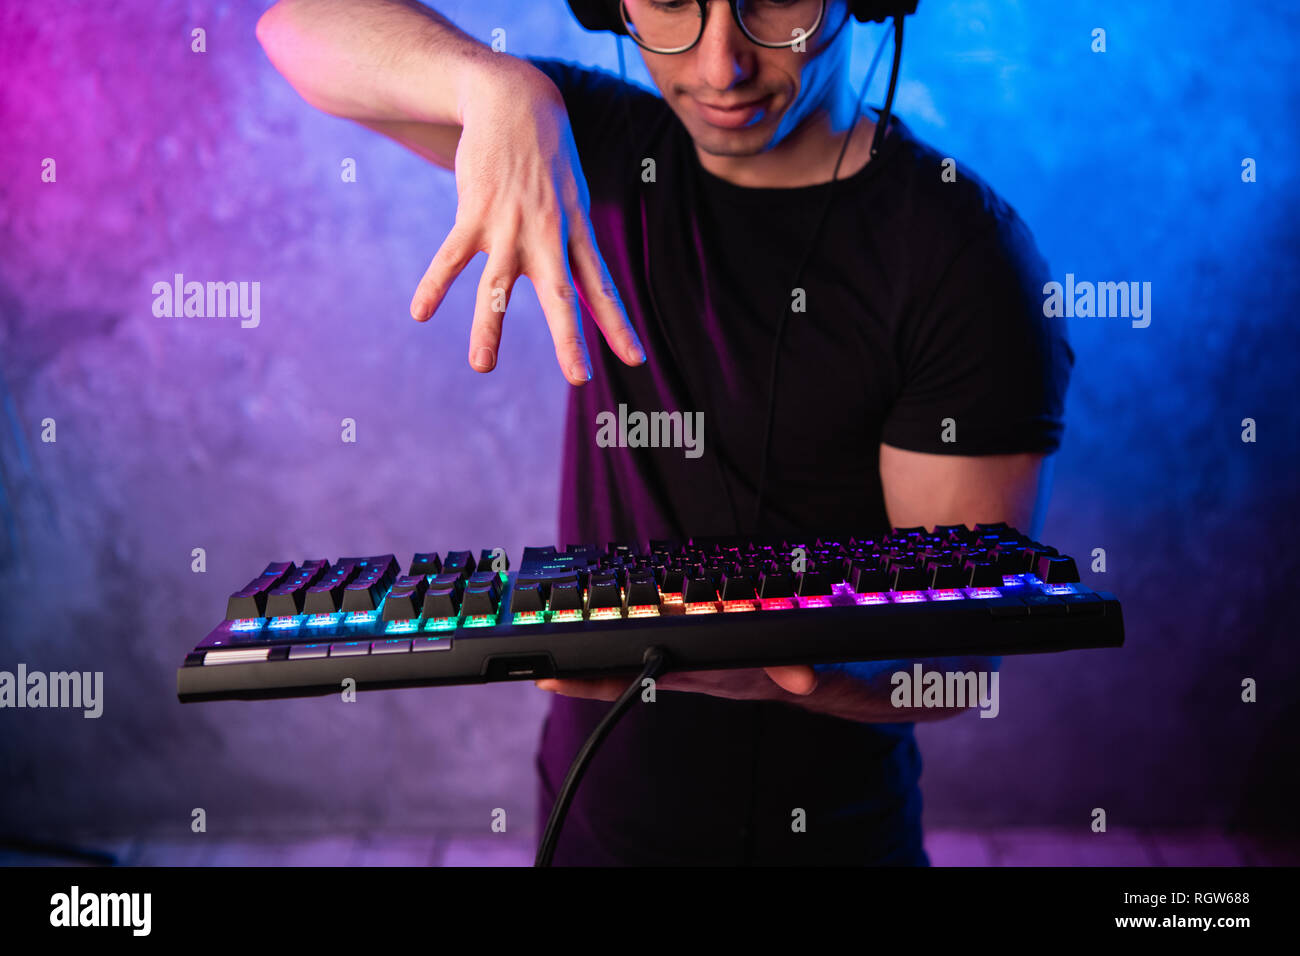 Close-up on gamer's hands going to press a key on a keyboard. Background is lit with neon lights - Stock Image